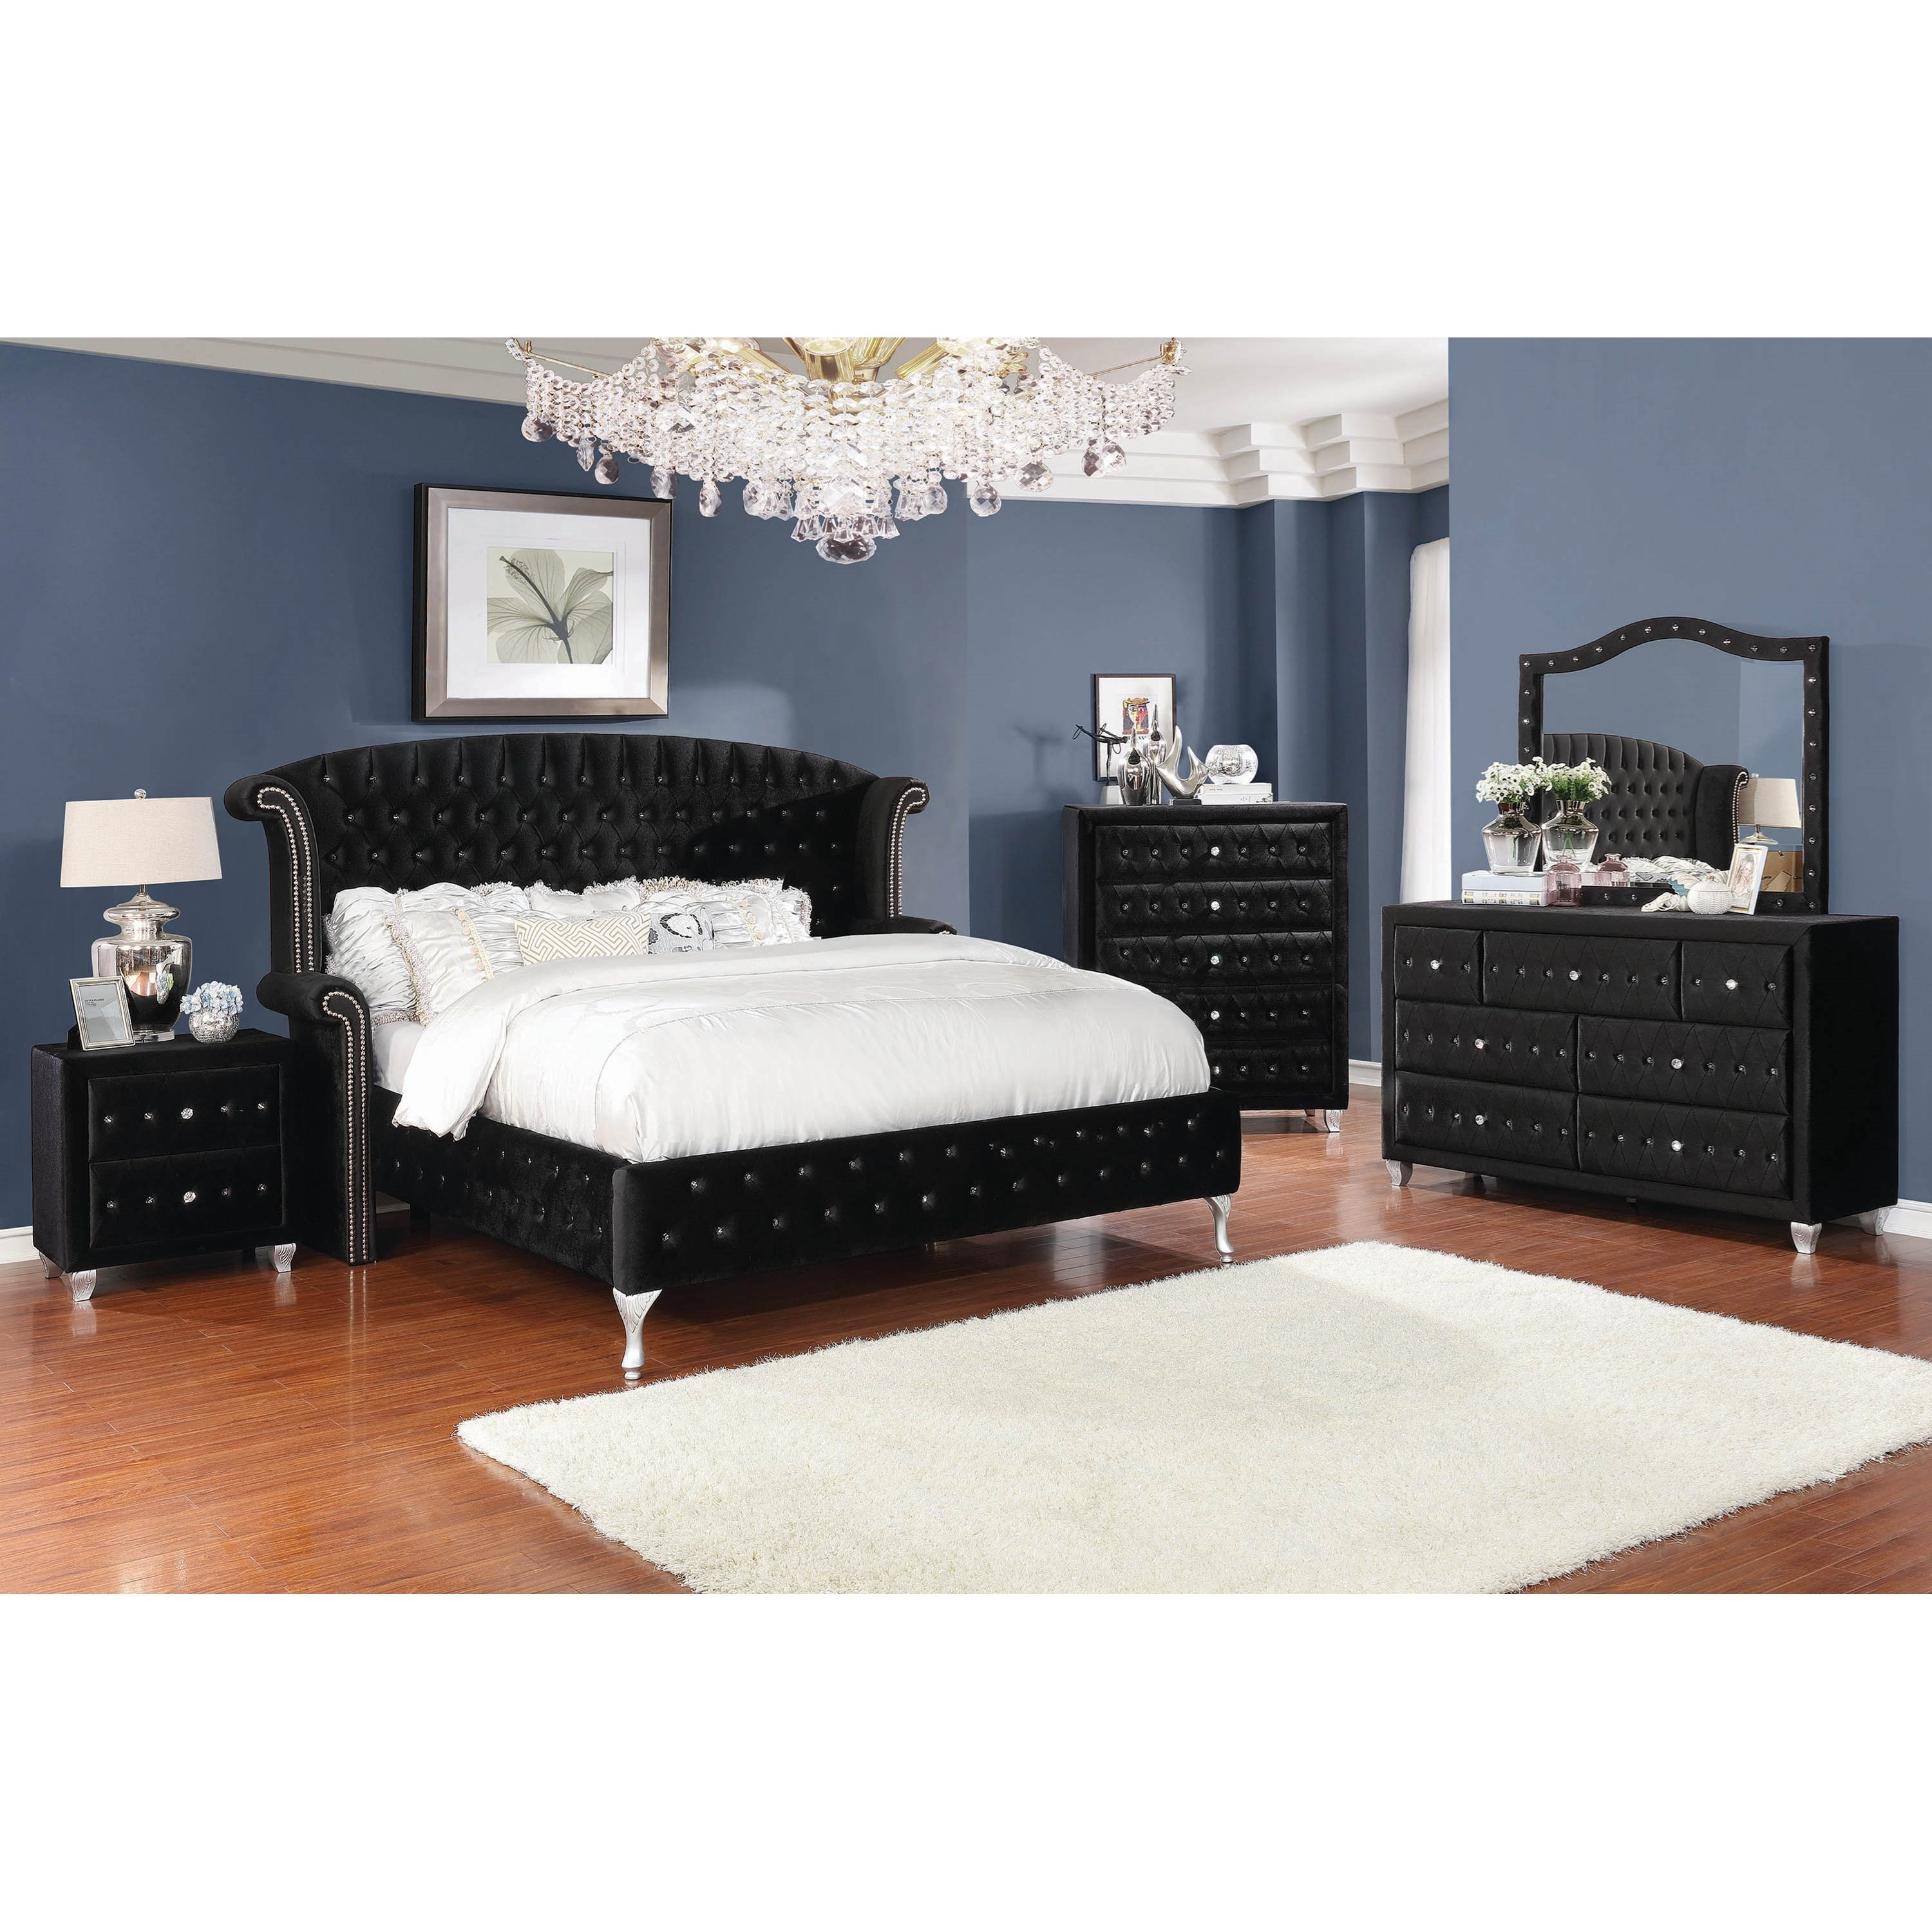 Deanna California King Bedroom Group by Coaster at Northeast Factory Direct